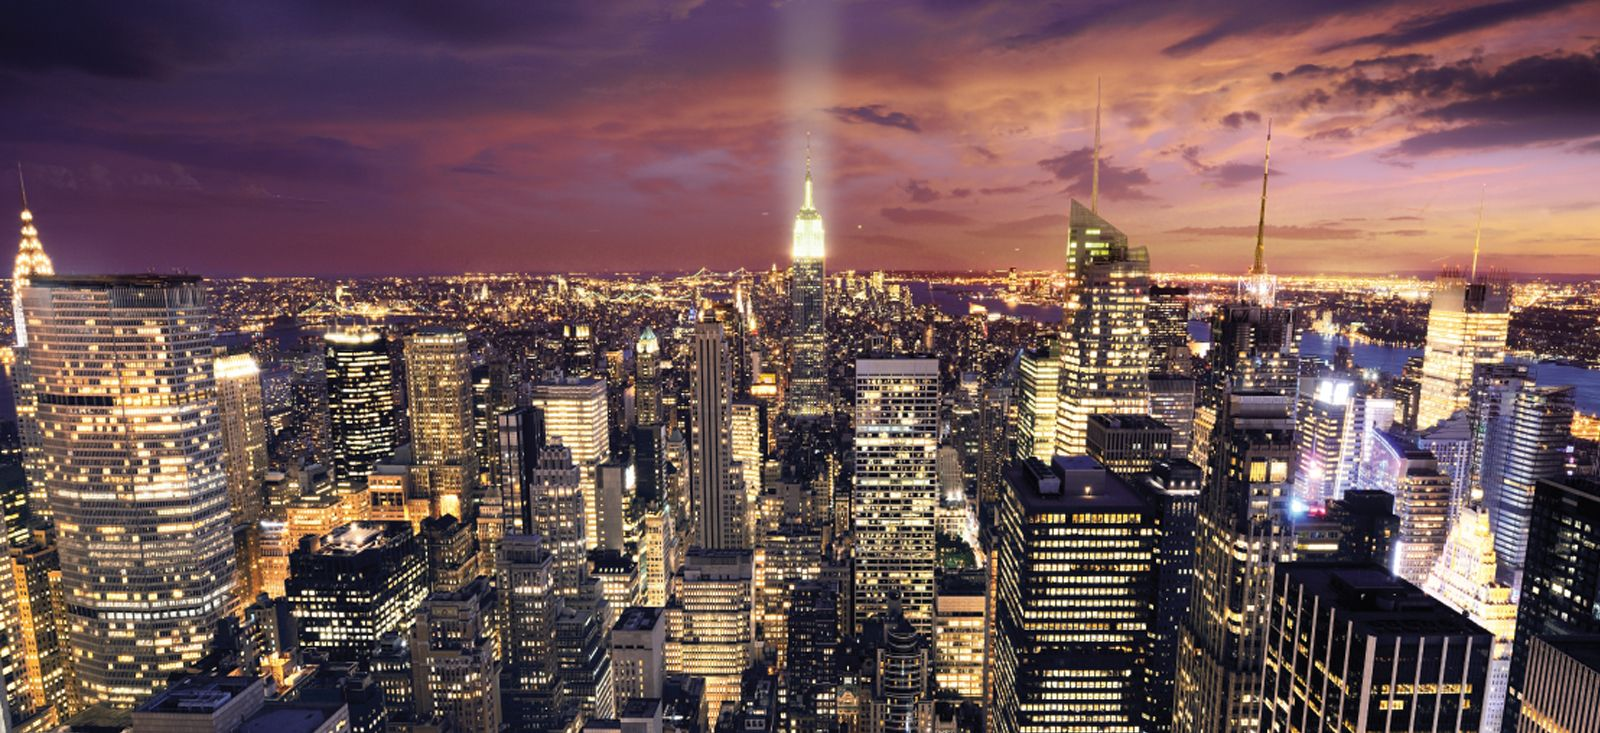 New York Skyline Wallpaper Mural For Wall 1600x733 45 Wallpapers